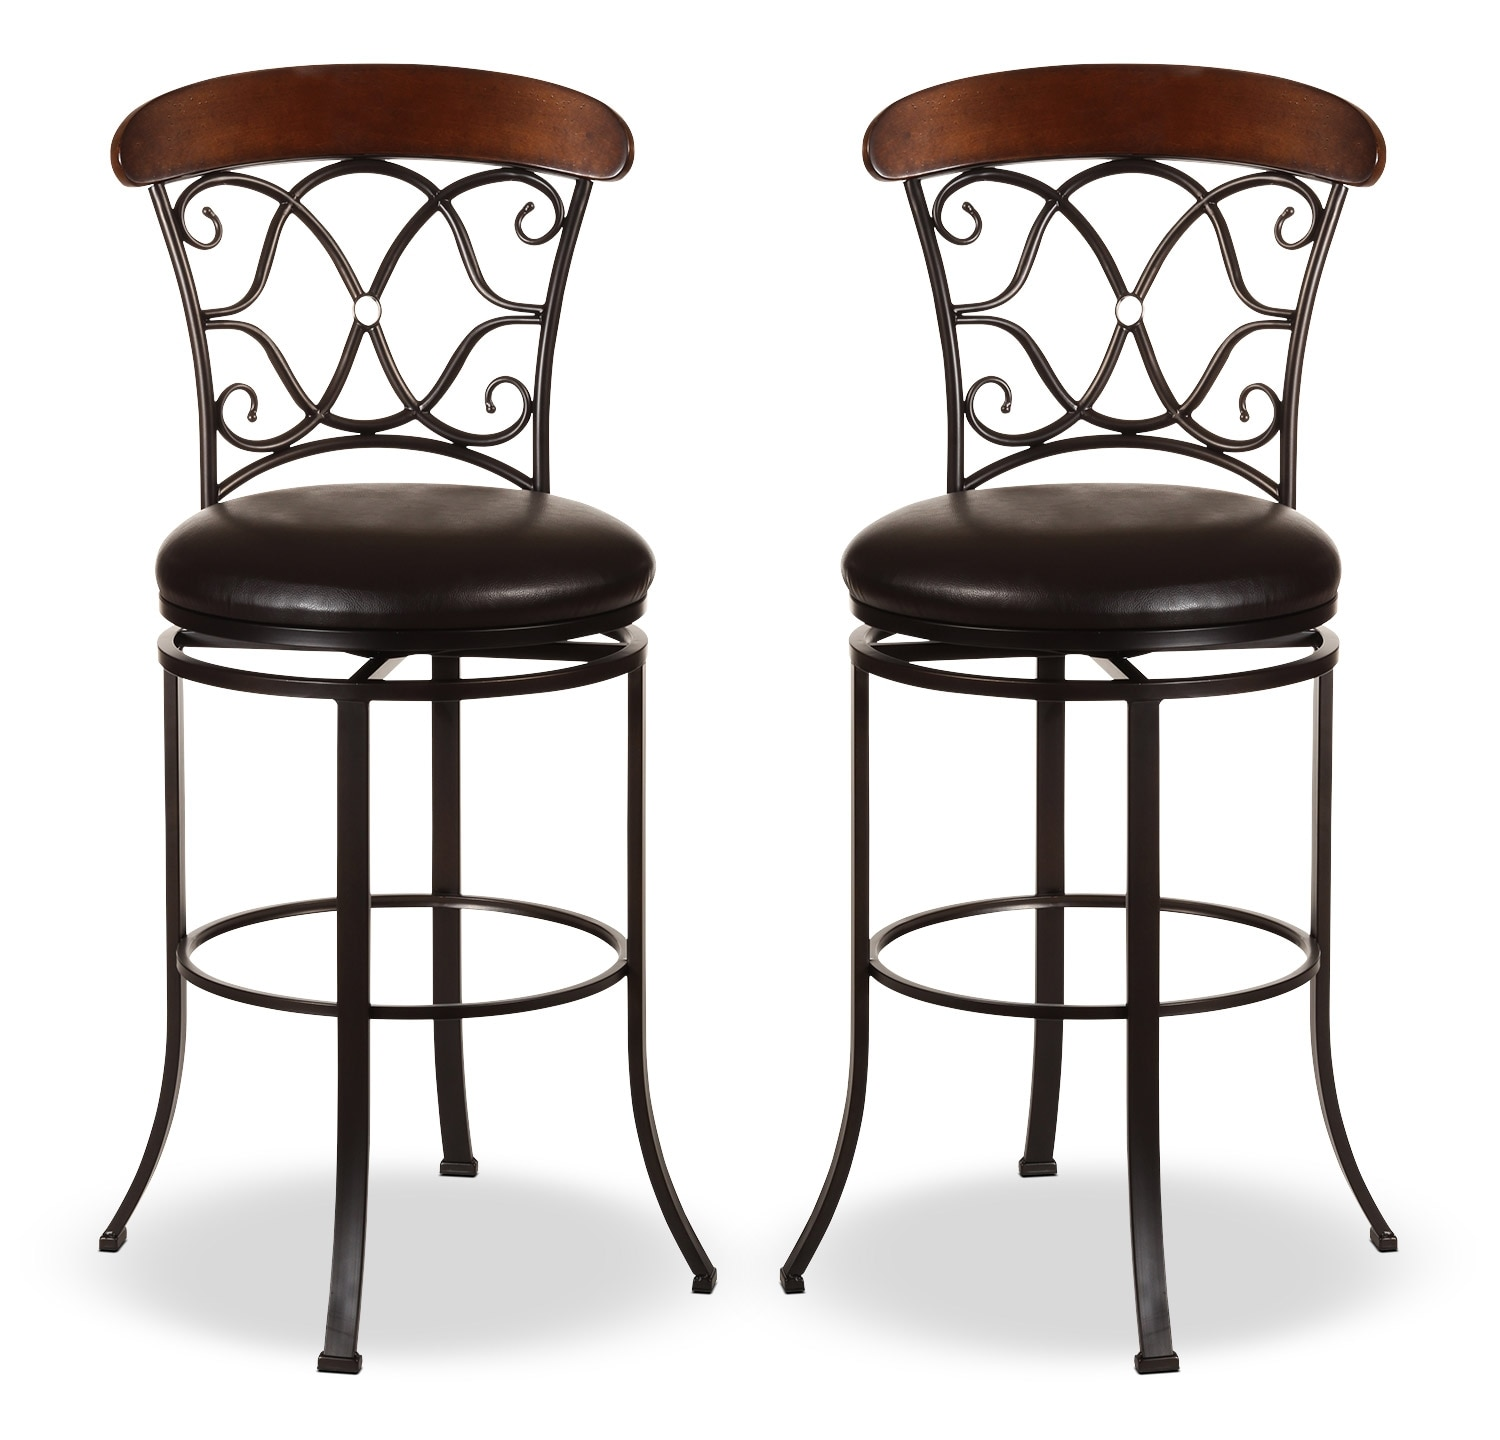 Dundee Swivel Barstool – Set of 2